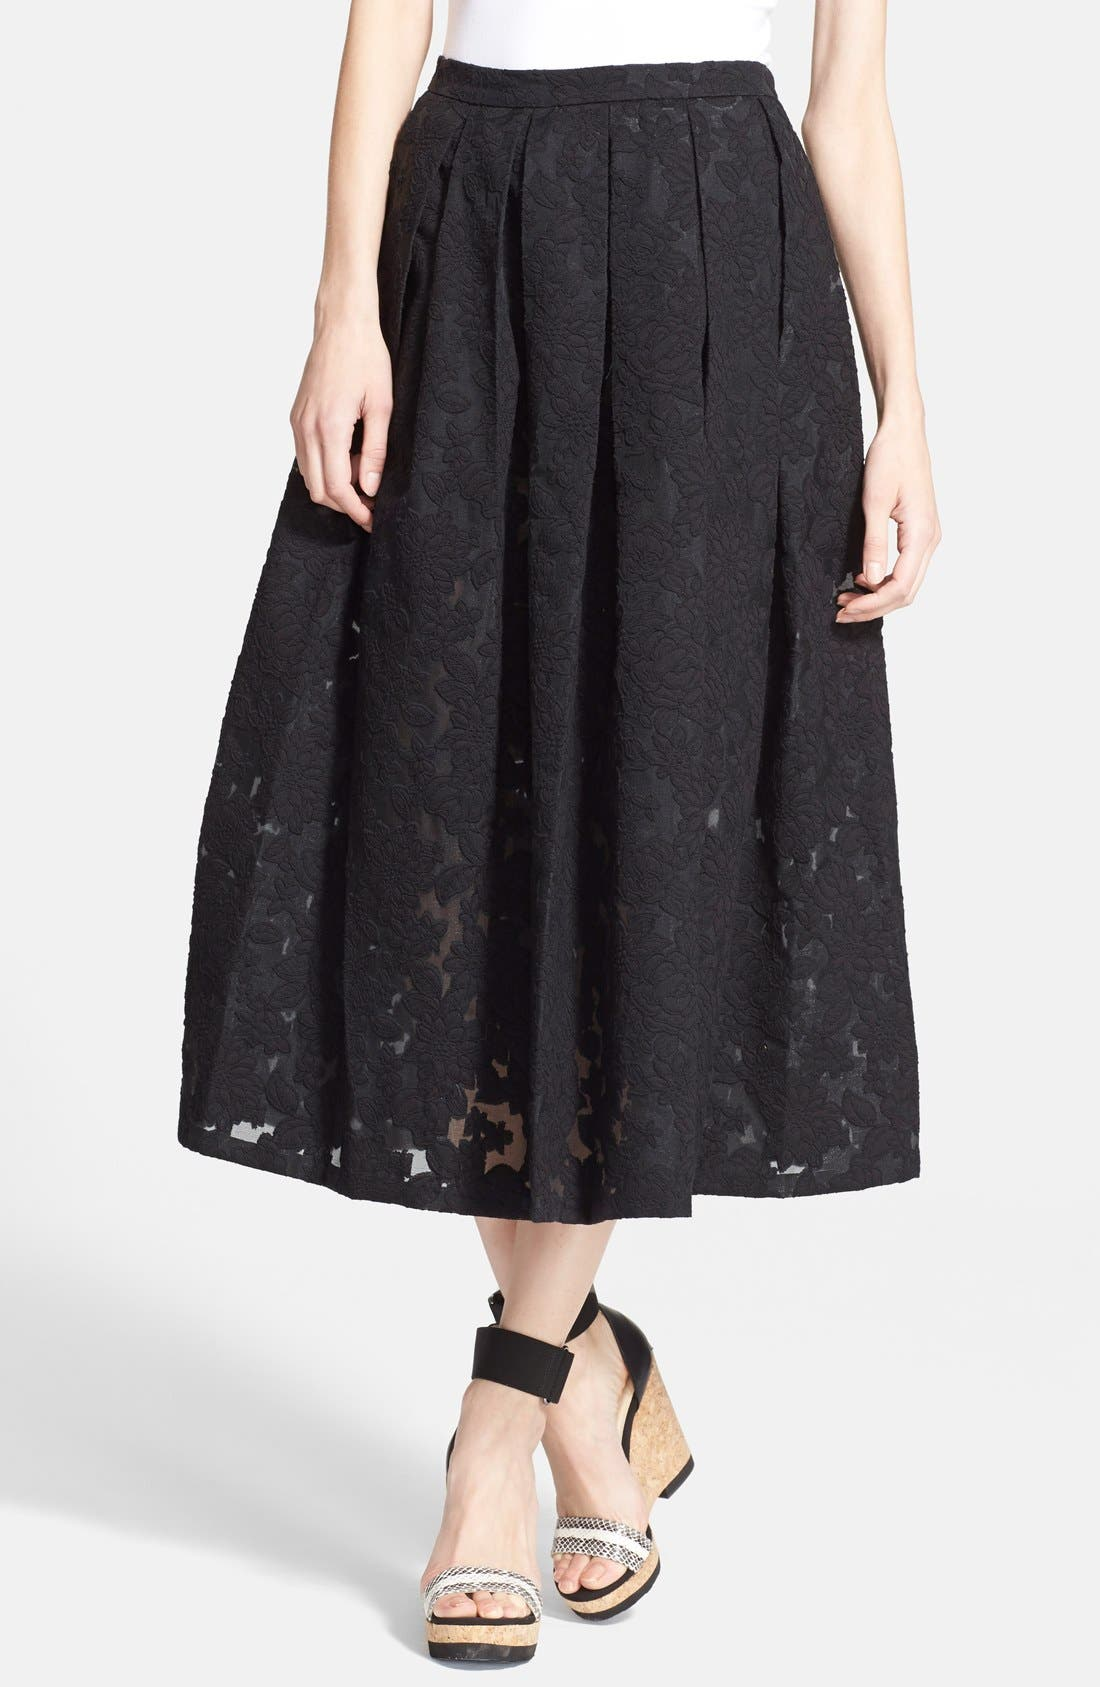 MICHAEL KORS, Floral Embroidered Pleated Midi Skirt, Main thumbnail 1, color, 001